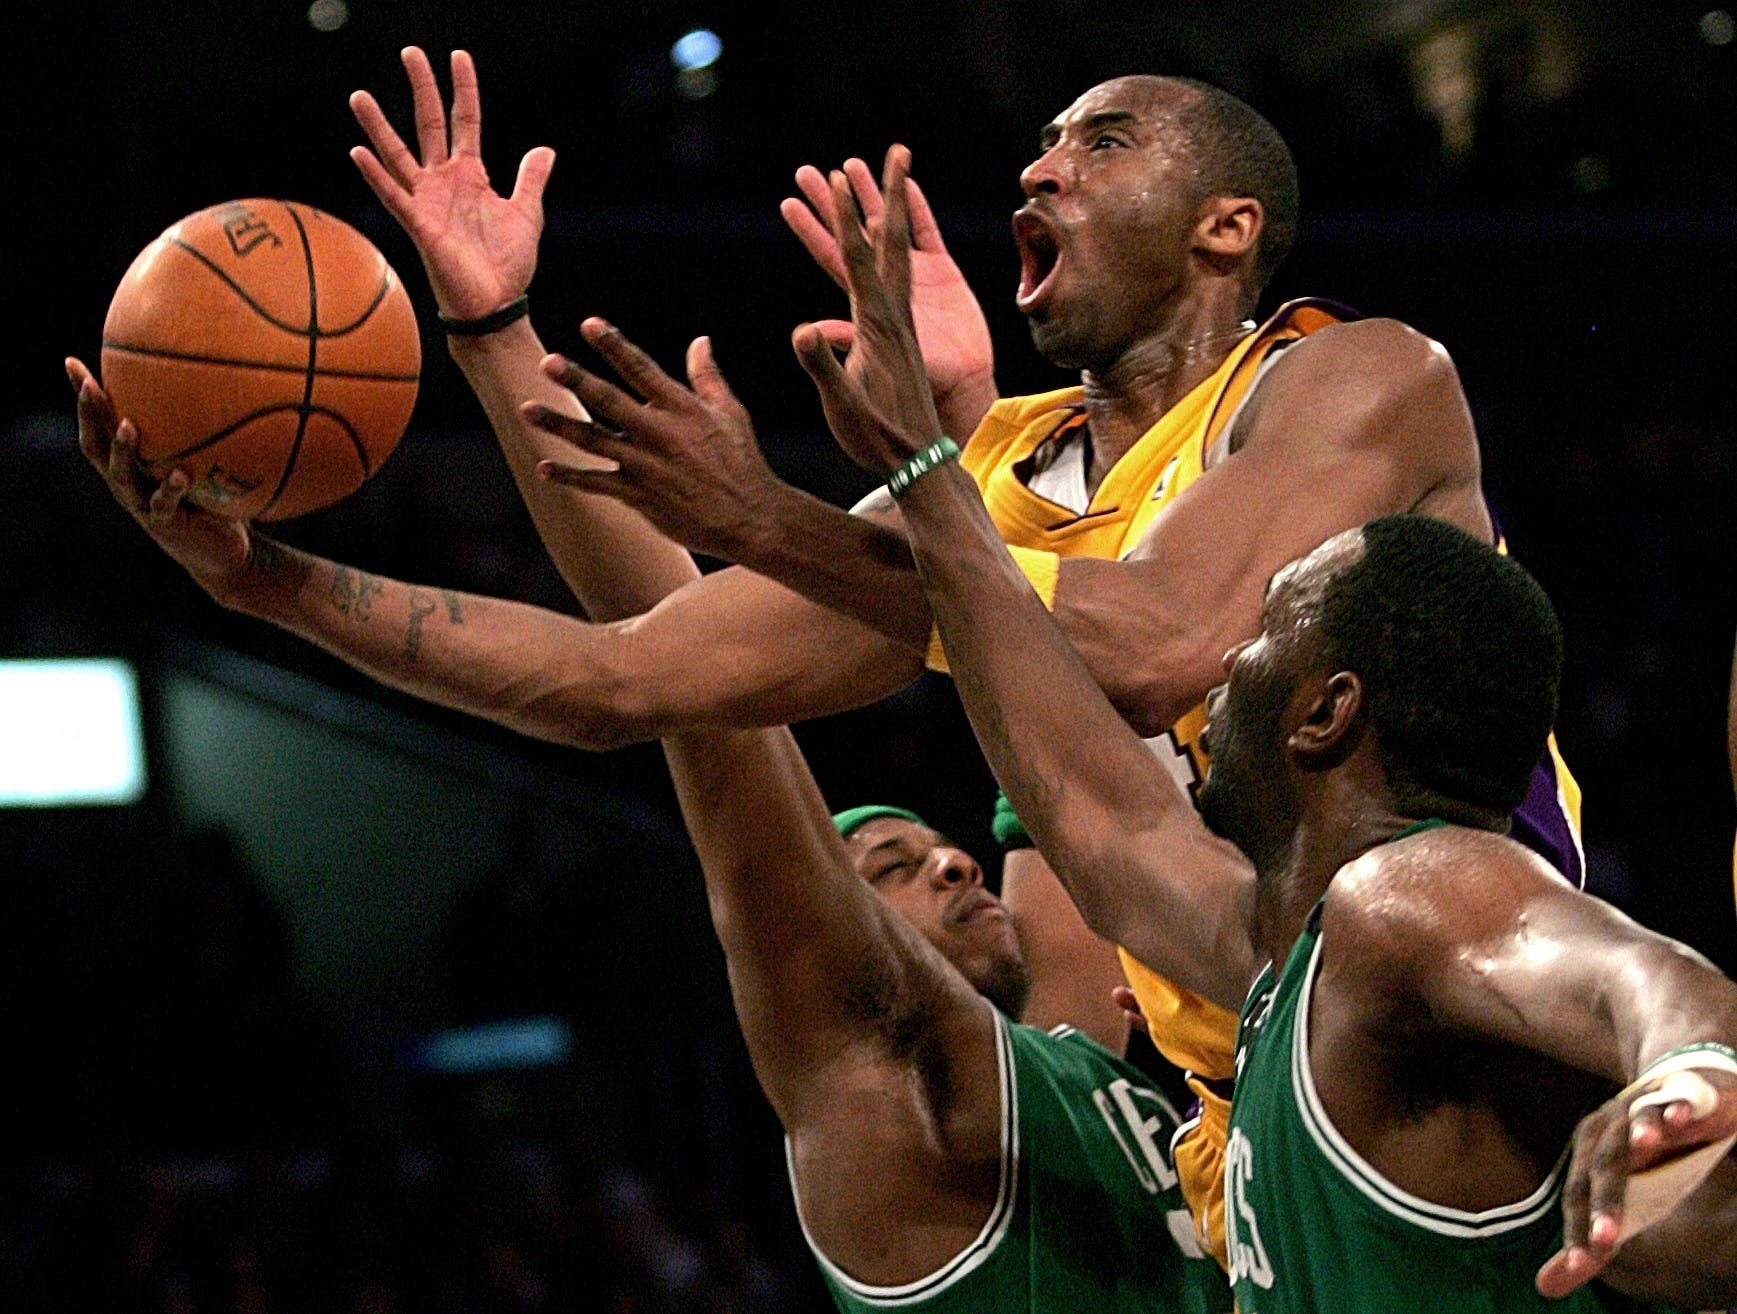 Kobe Bryant, top, goes up for a shot between the Boston Celtics' Paul Pierce, left, and Al Jefferson during the first half of an NBA basketball game in Los Angeles, Feb. 23, 2006. (AP)